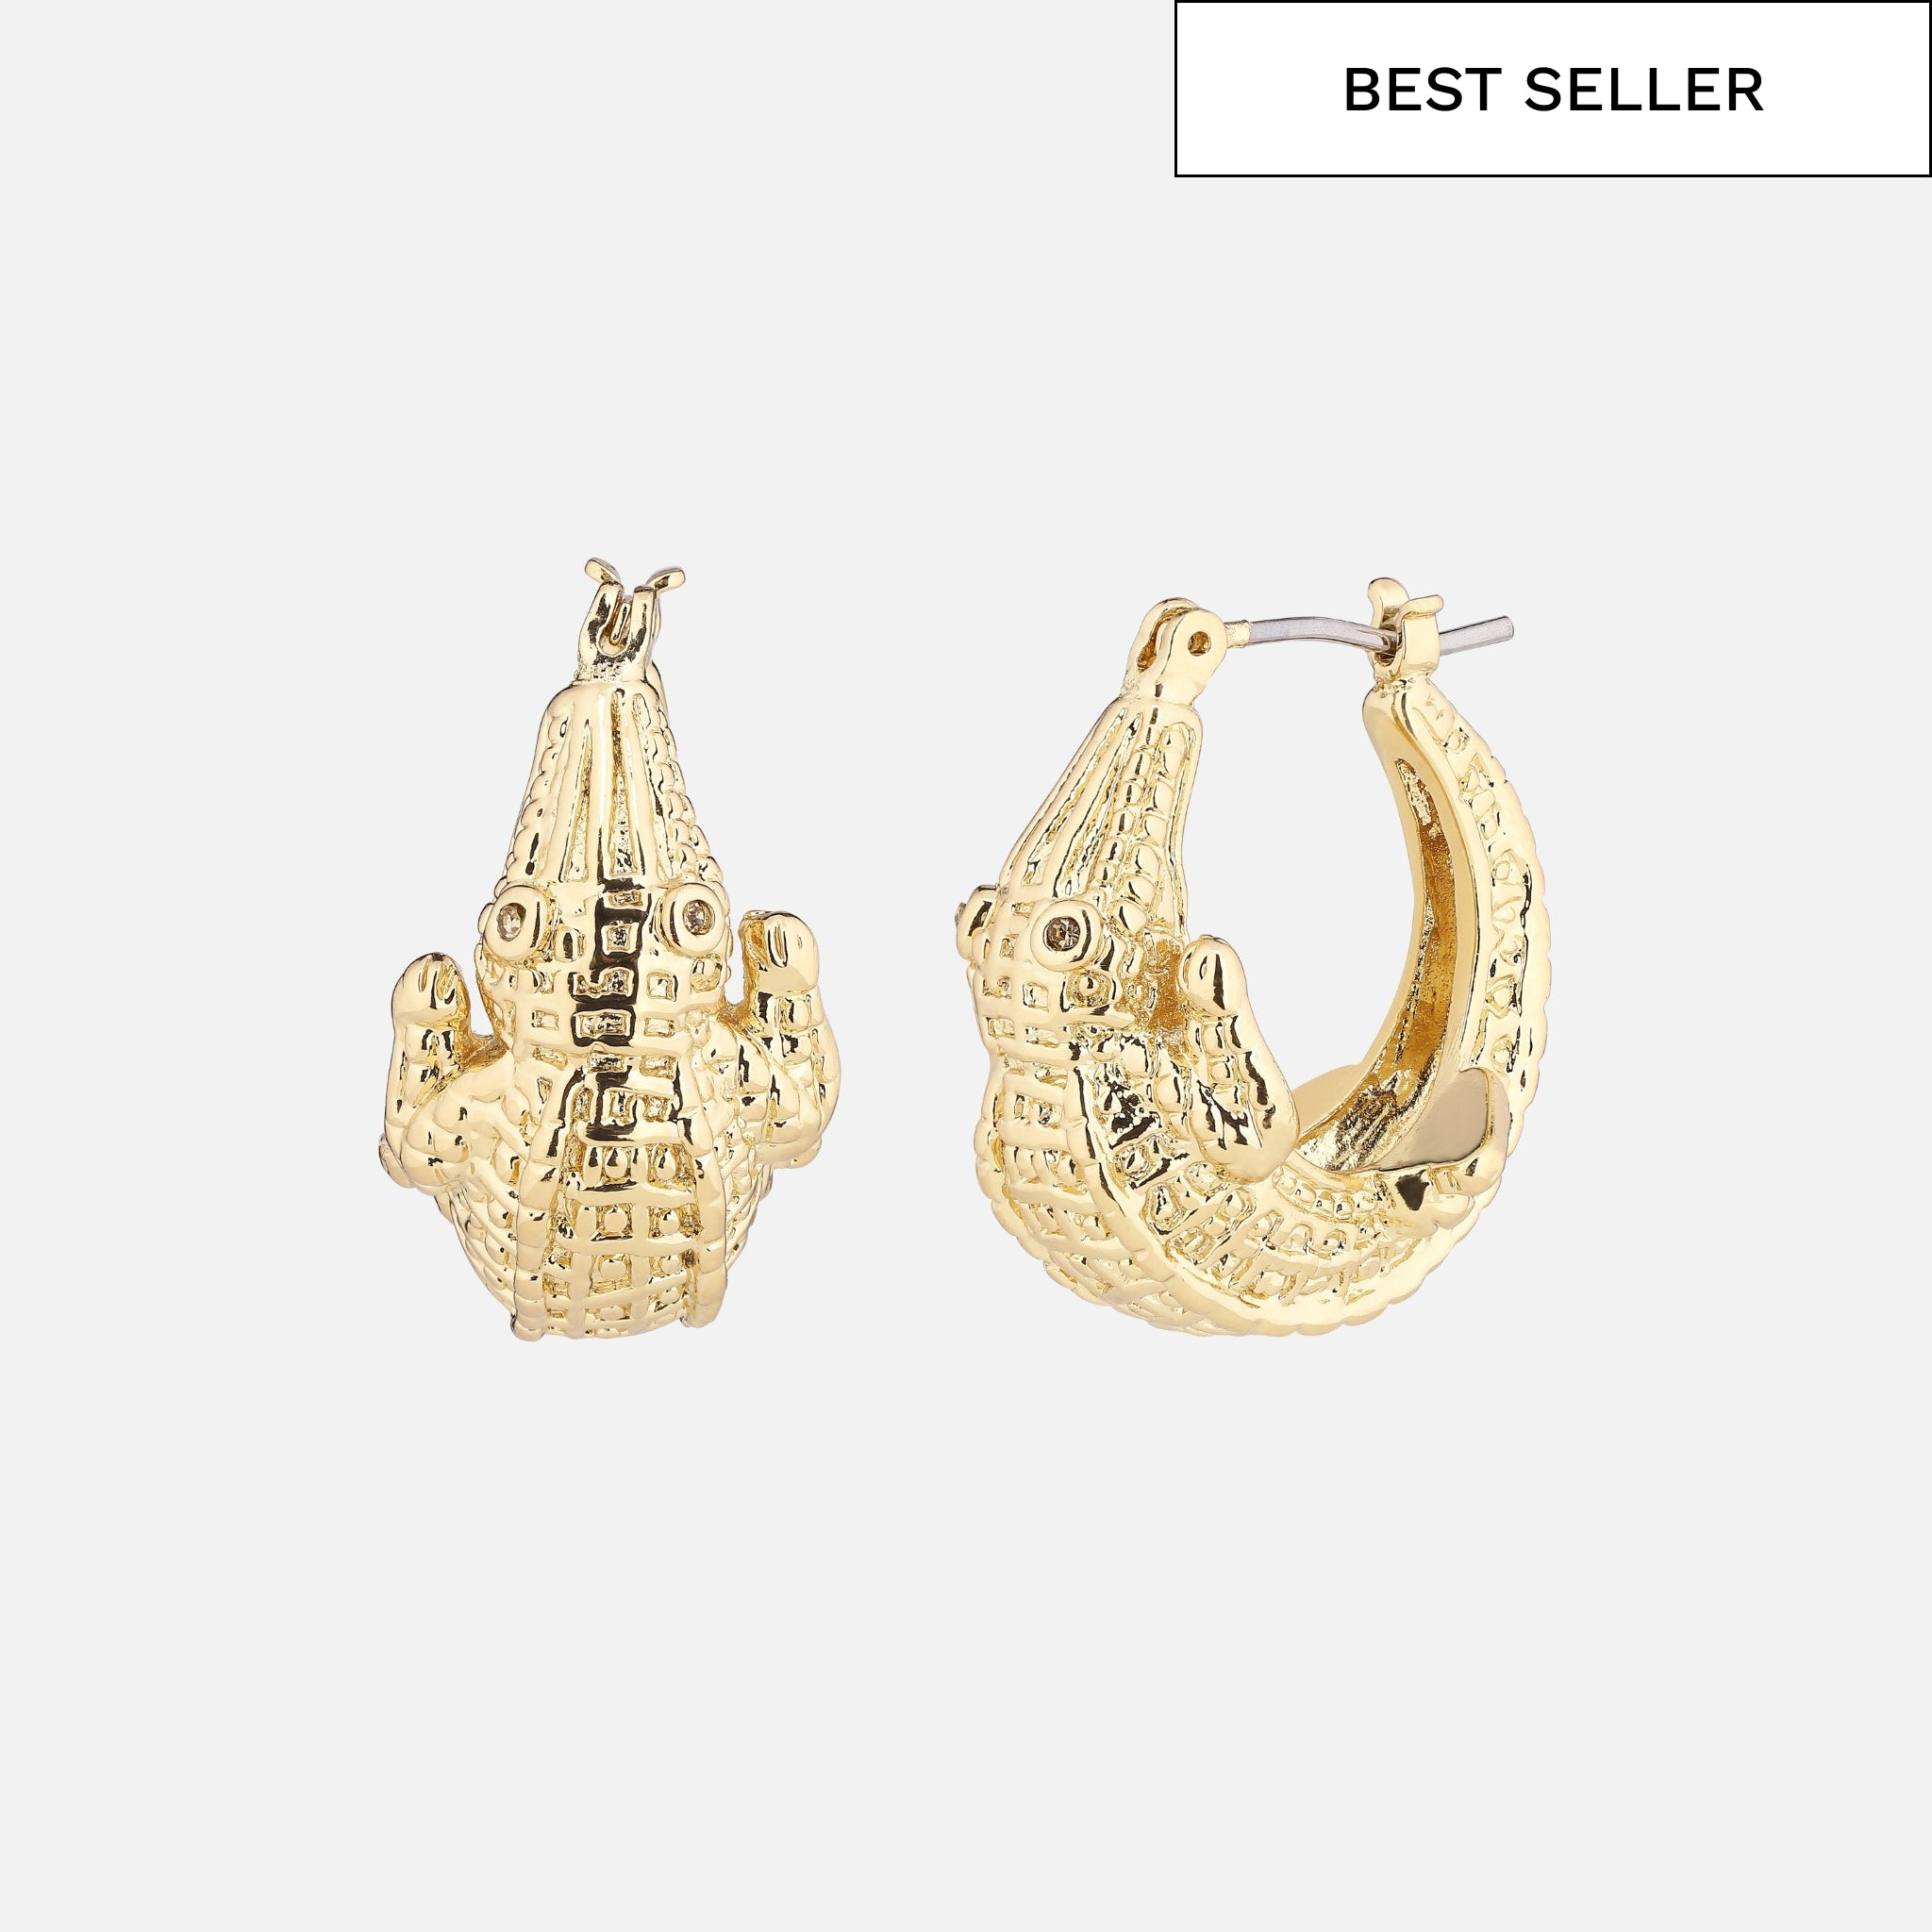 North North North Gold Earrings | Dundee Earring Gold